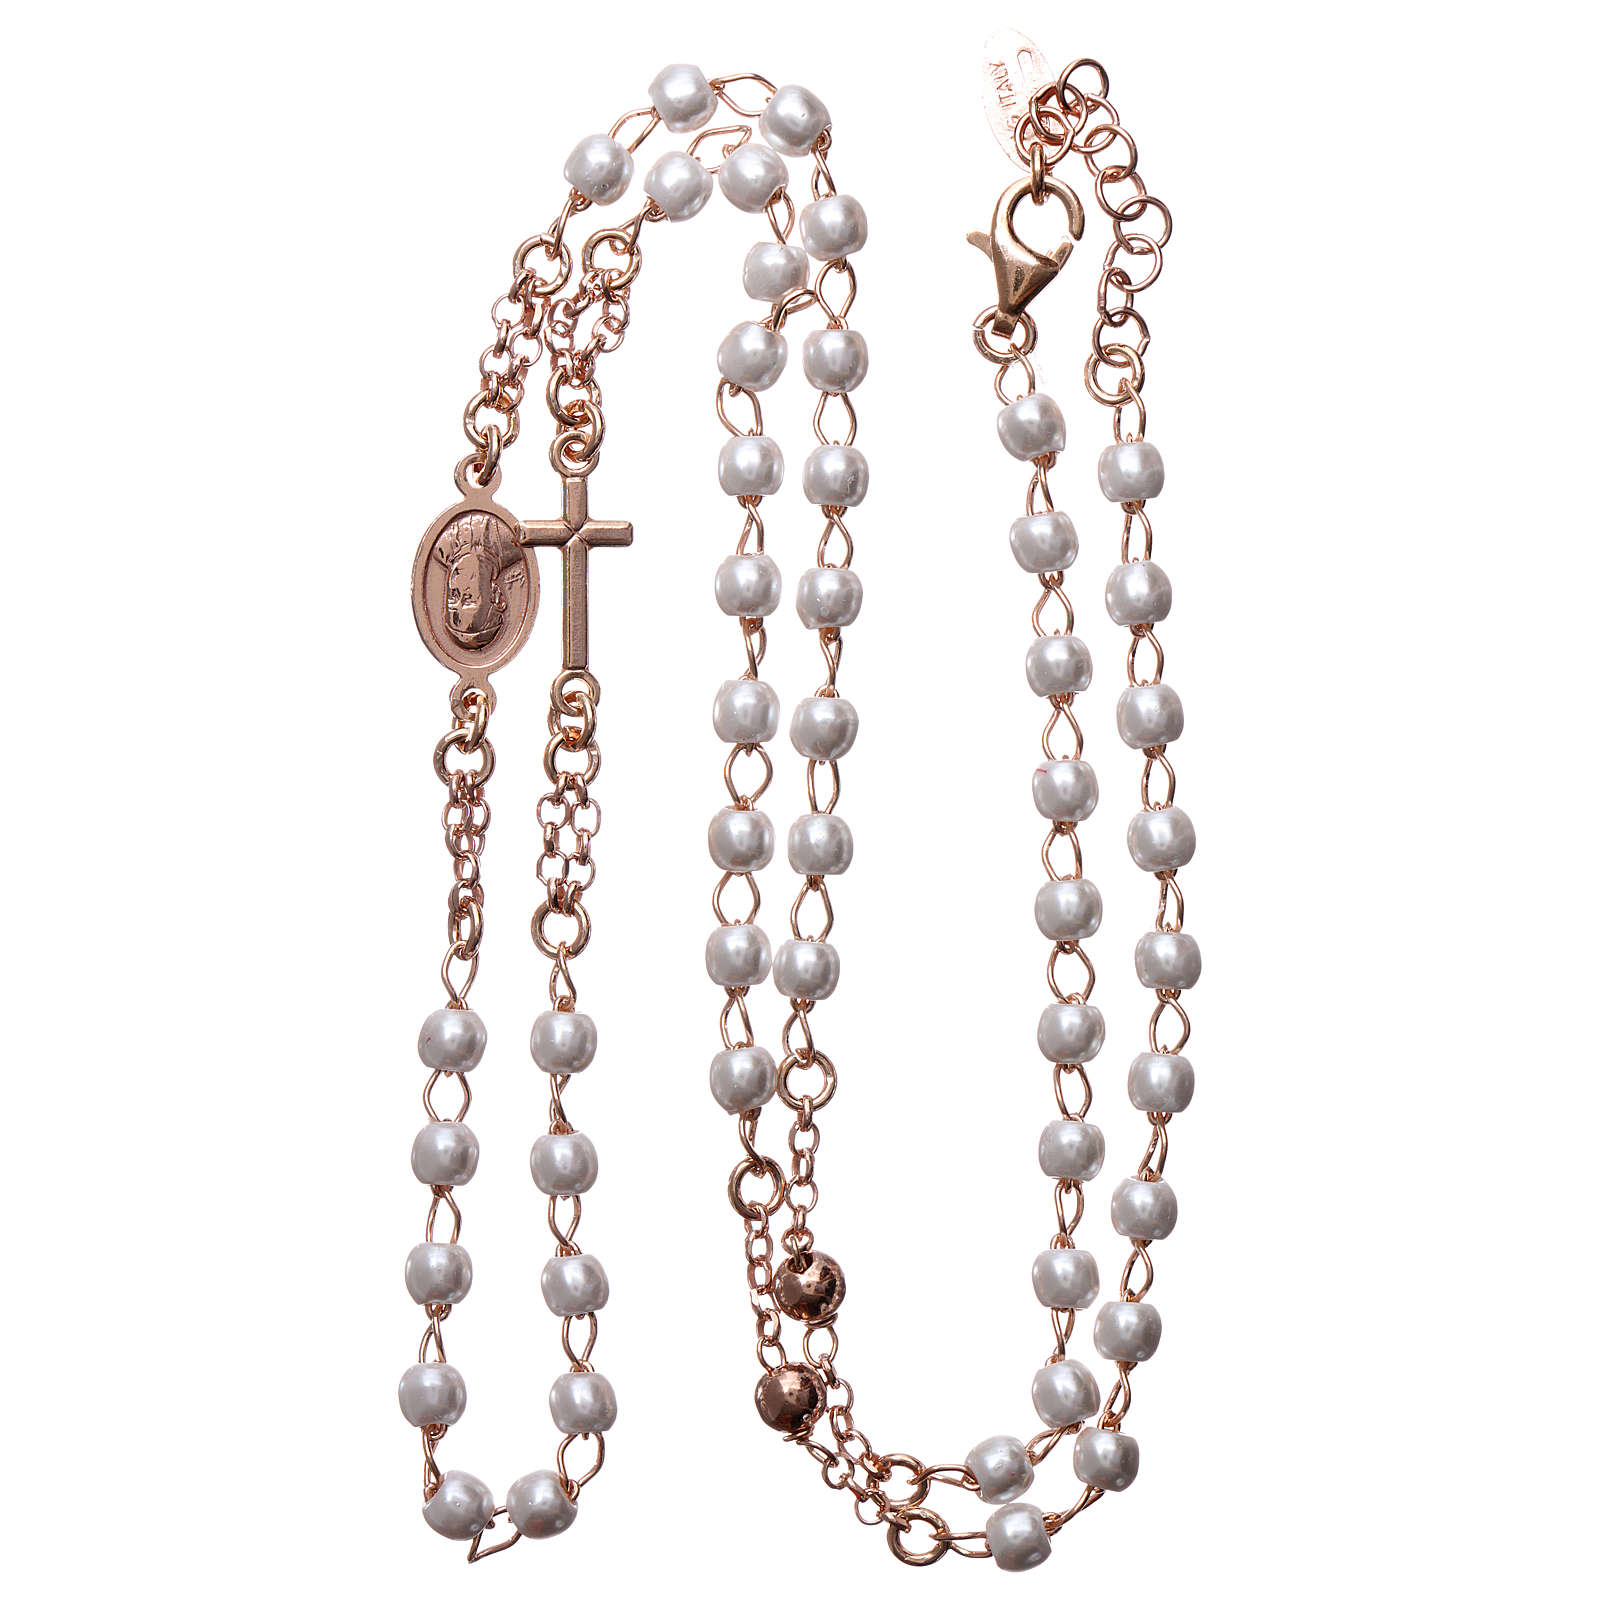 Rosary AMEN Necklace pearls silver 925, Rosè finish 4